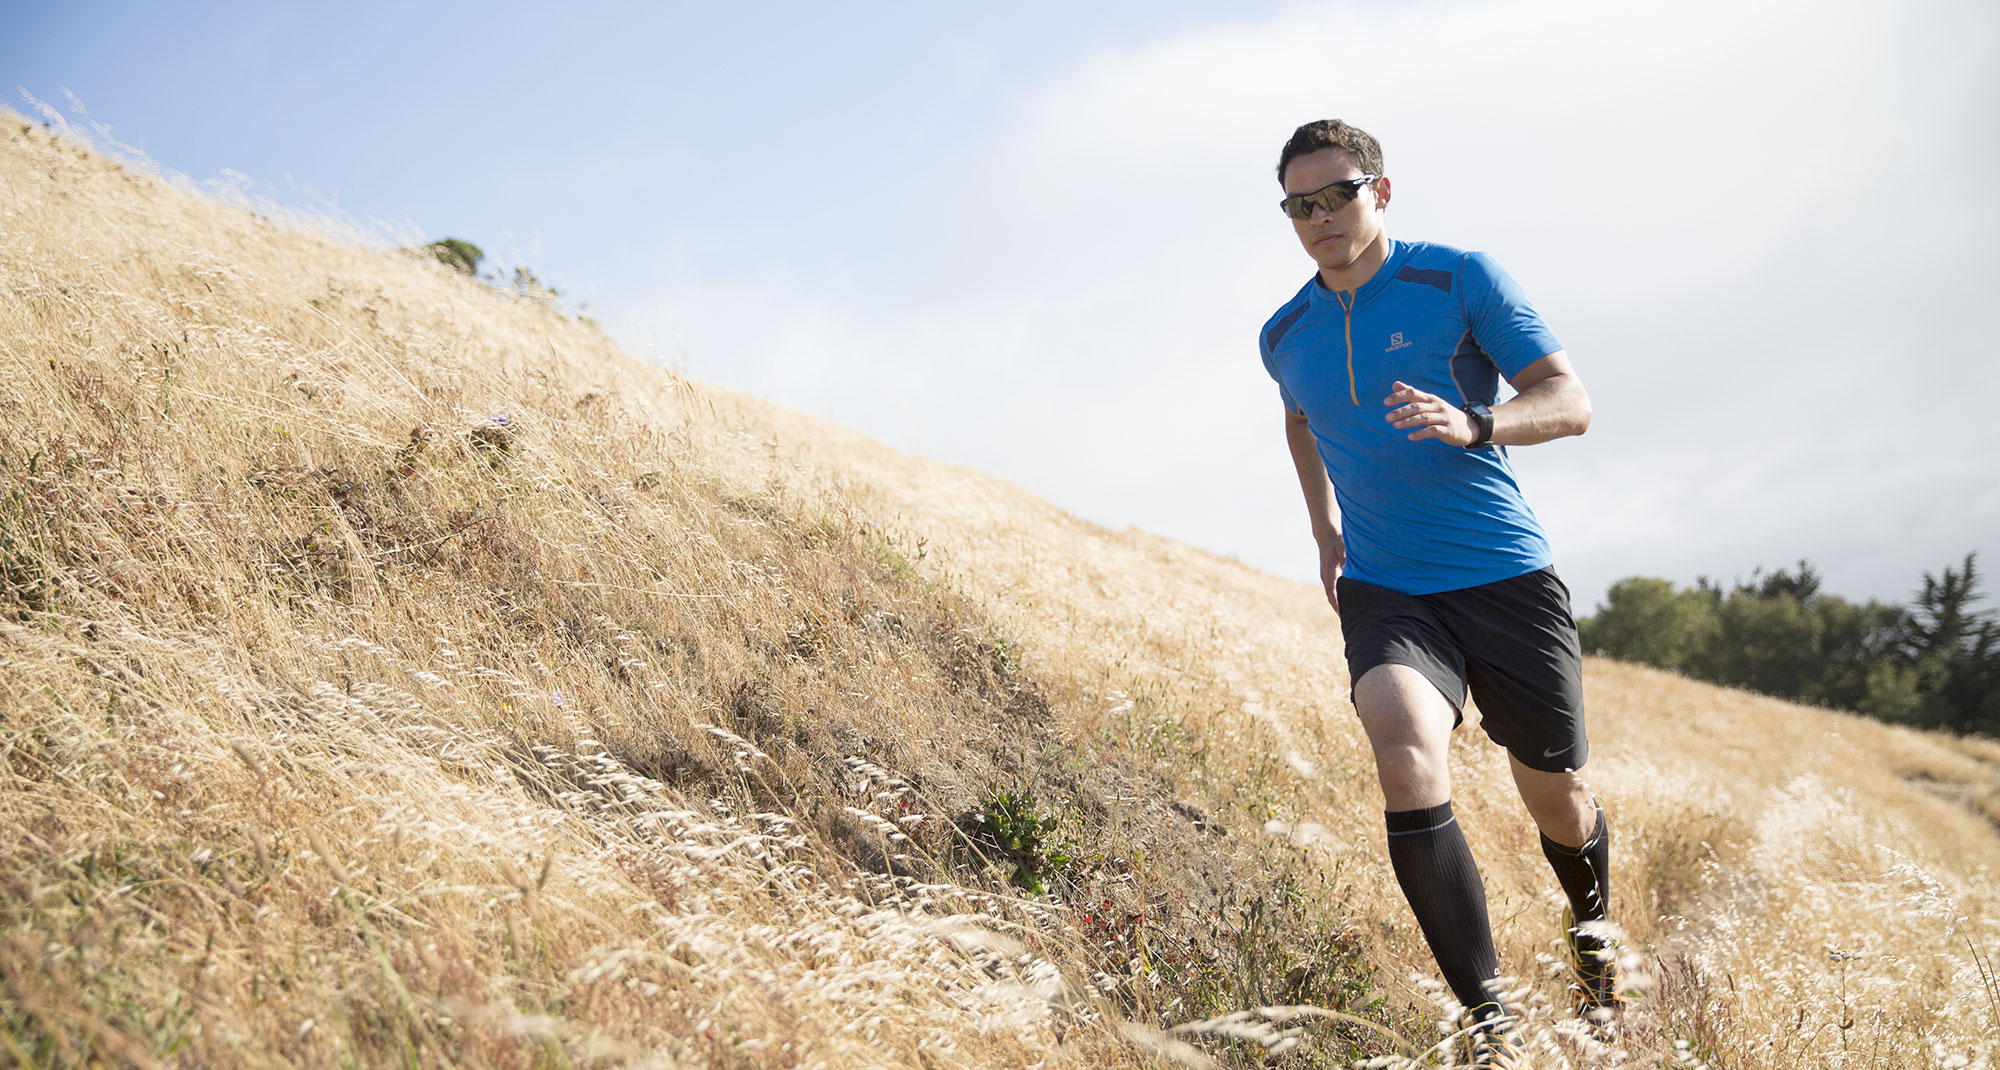 Activity, heat, humidity, hydration, altitude and fuel affect your running heart rate